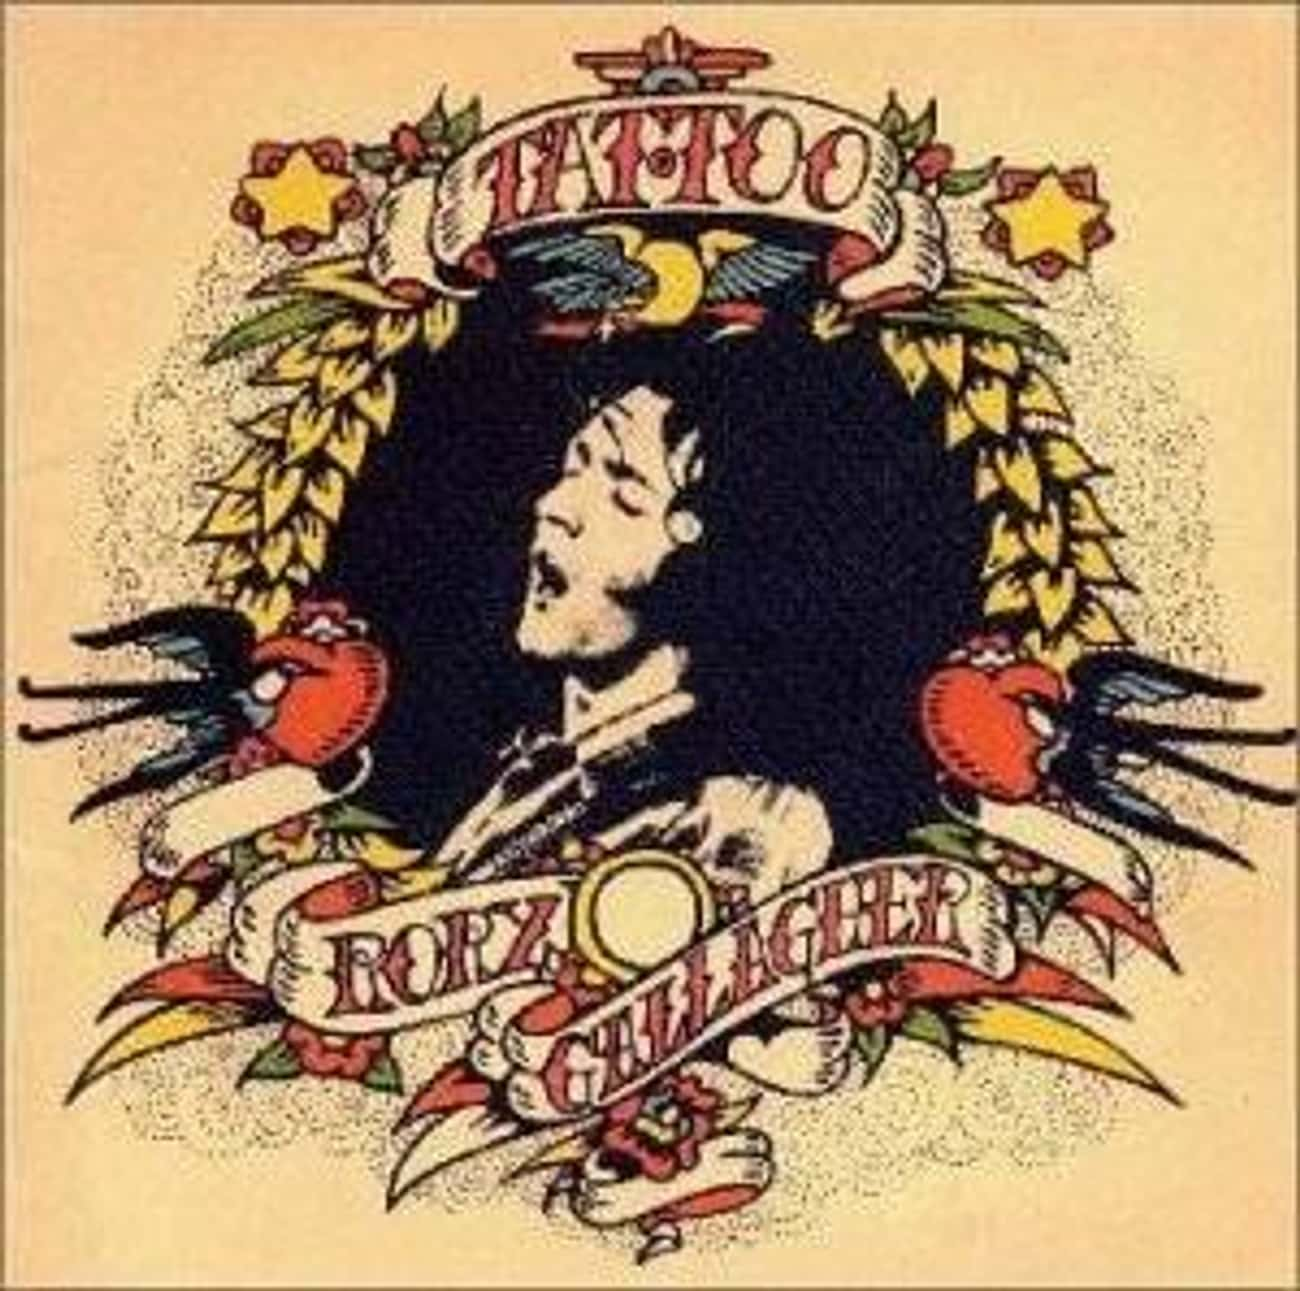 Tattoo is listed (or ranked) 1 on the list The Best Rory Gallagher Albums of All Time